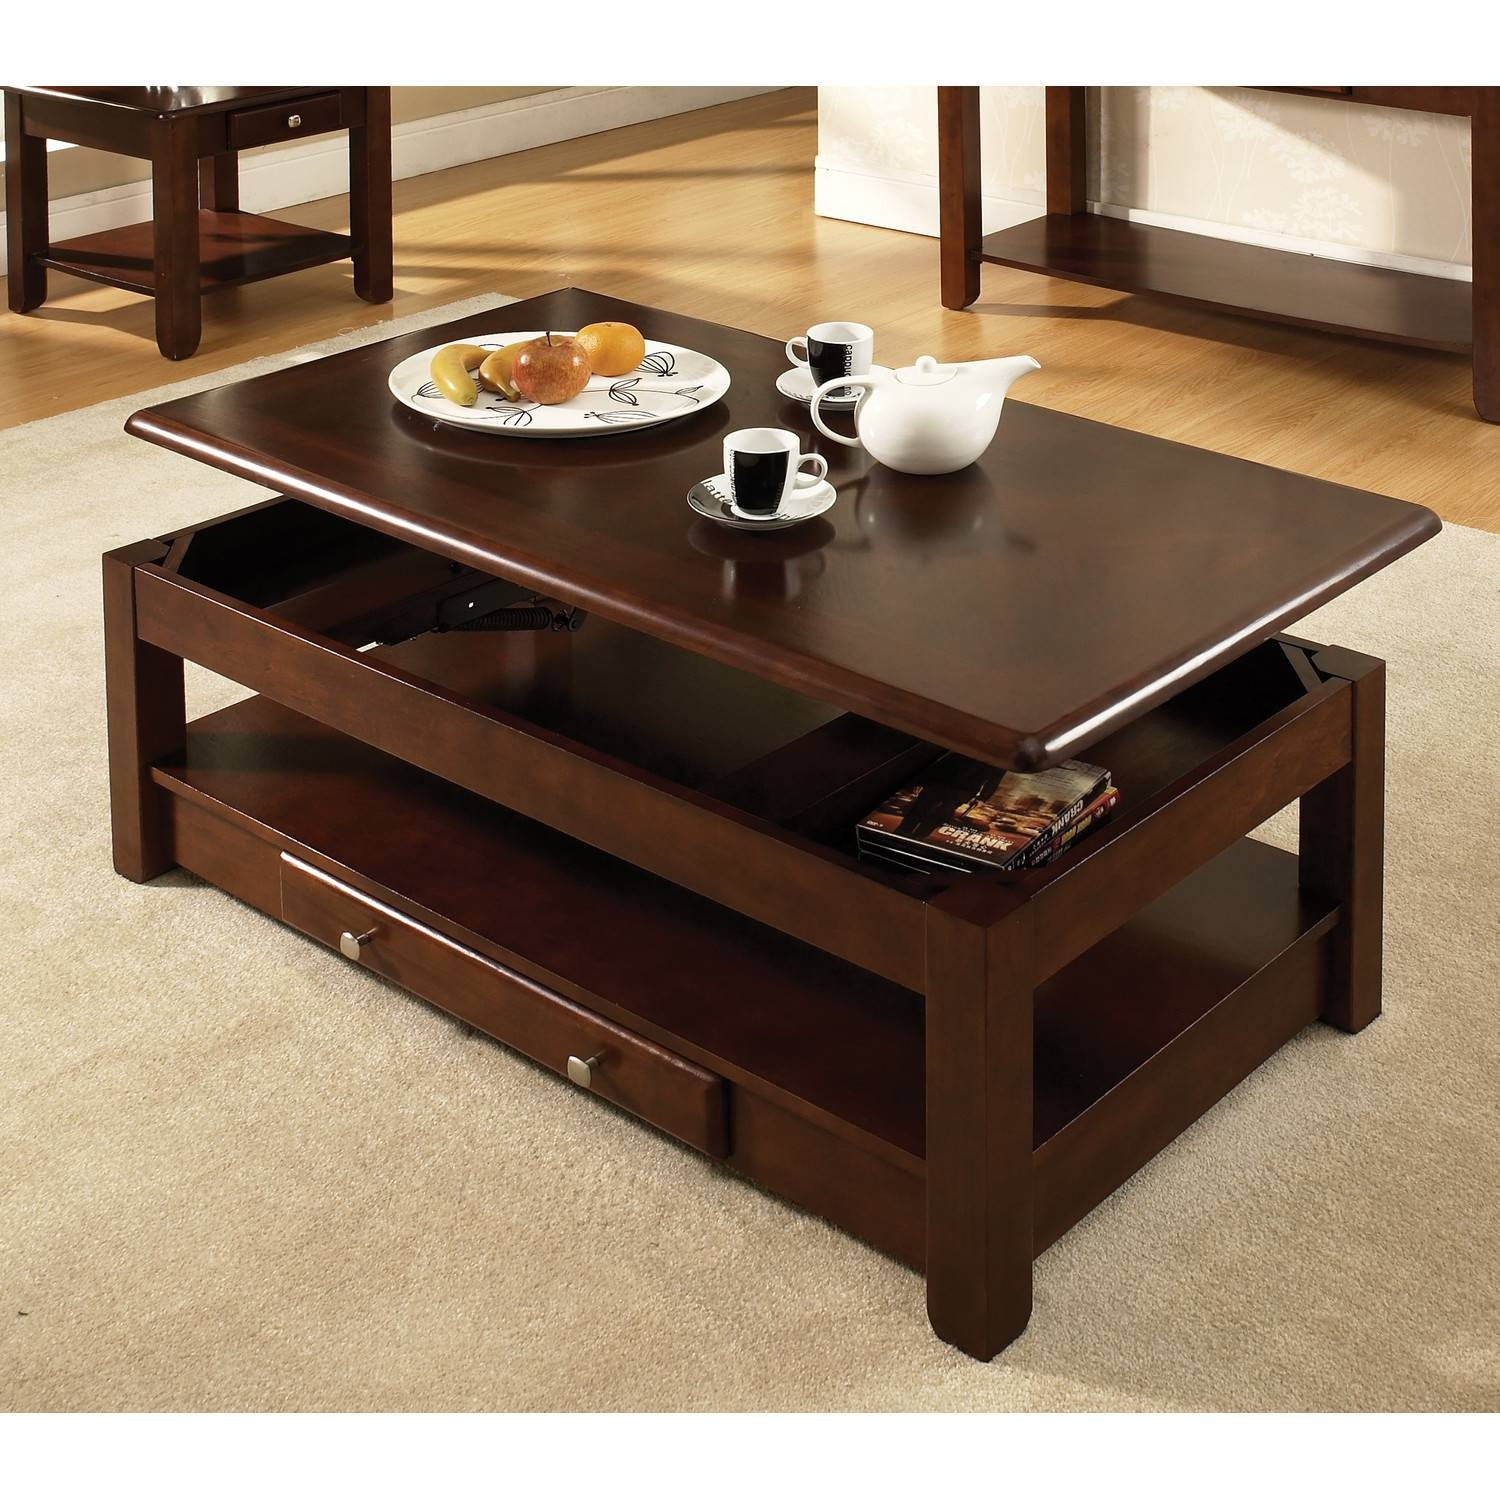 Coffee Table : Square Shape Wood Dark Brown On Carpet With Grey with regard to Square Shaped Coffee Tables (Image 3 of 30)